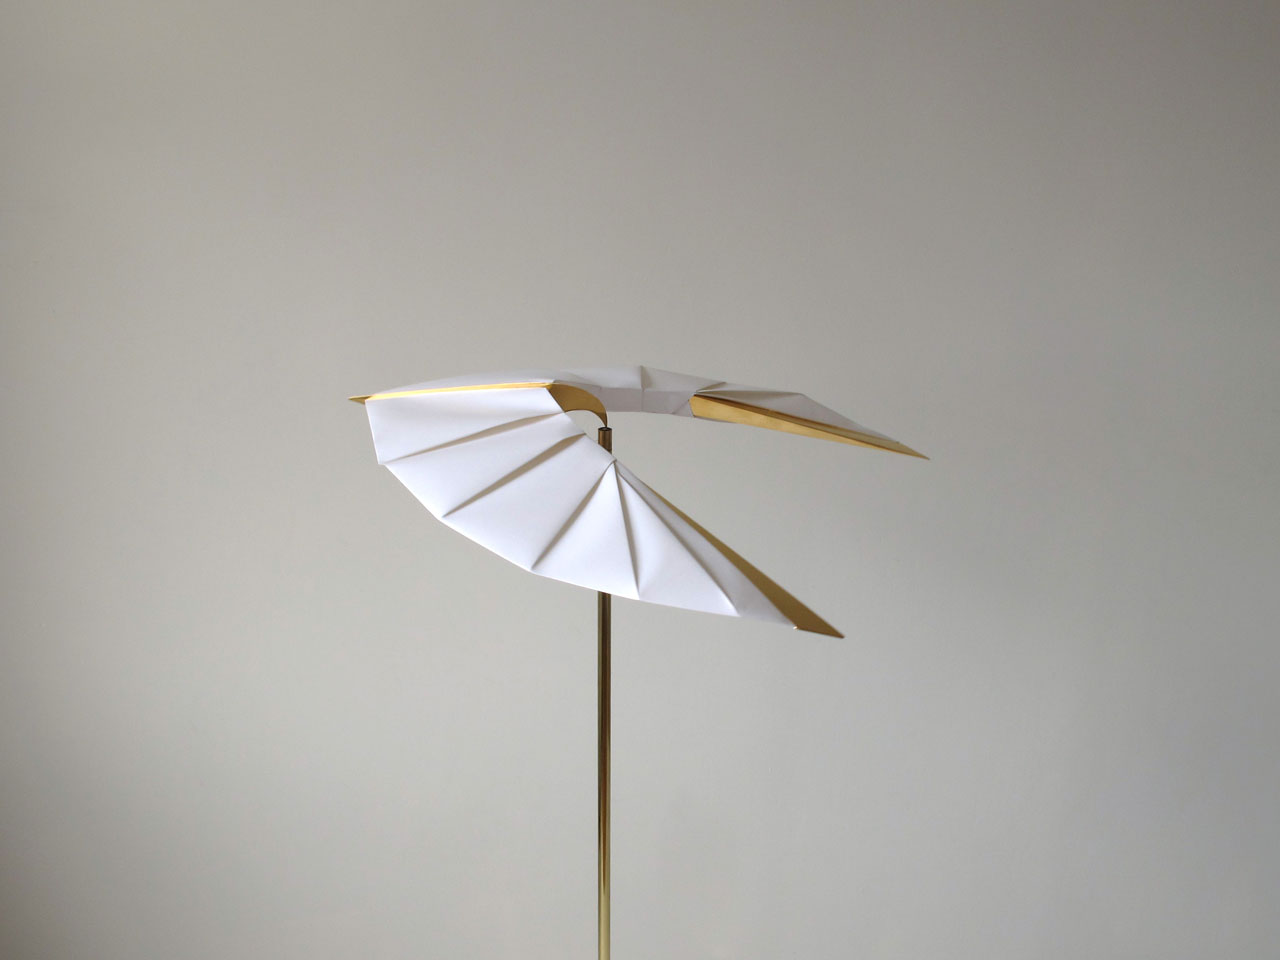 Umut Yamac presentedFRAGILE / NATURE, a series of new works which continue his exploration of balance and light.